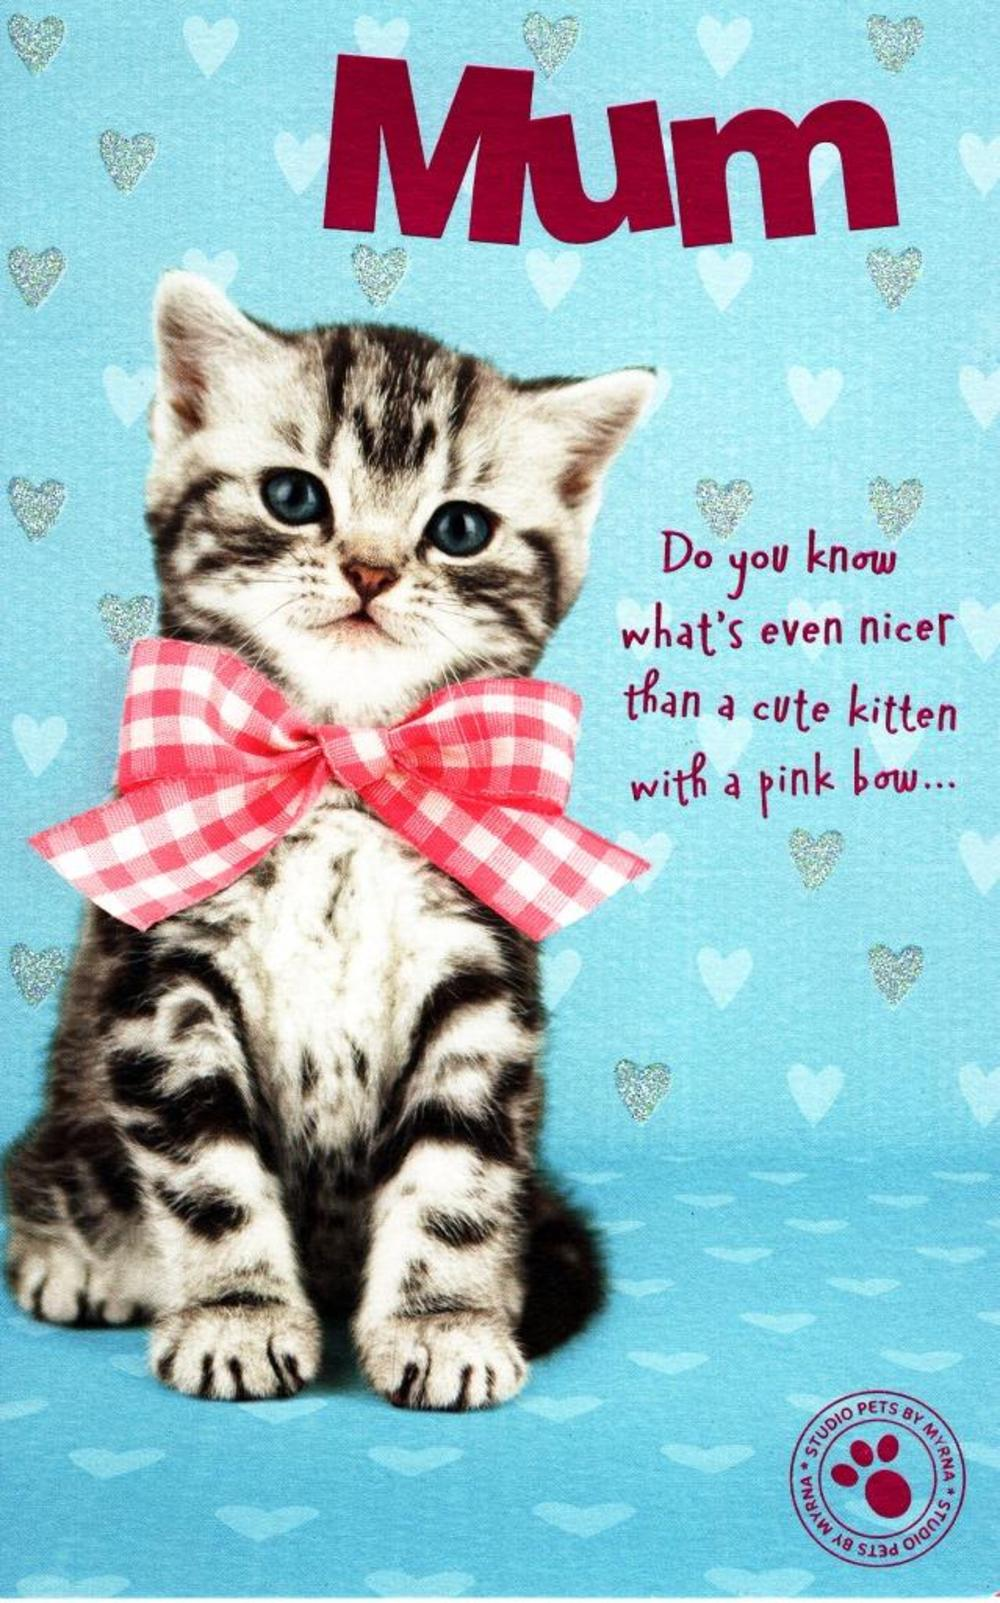 Cute Kitten Mum Happy Mother's Day Card